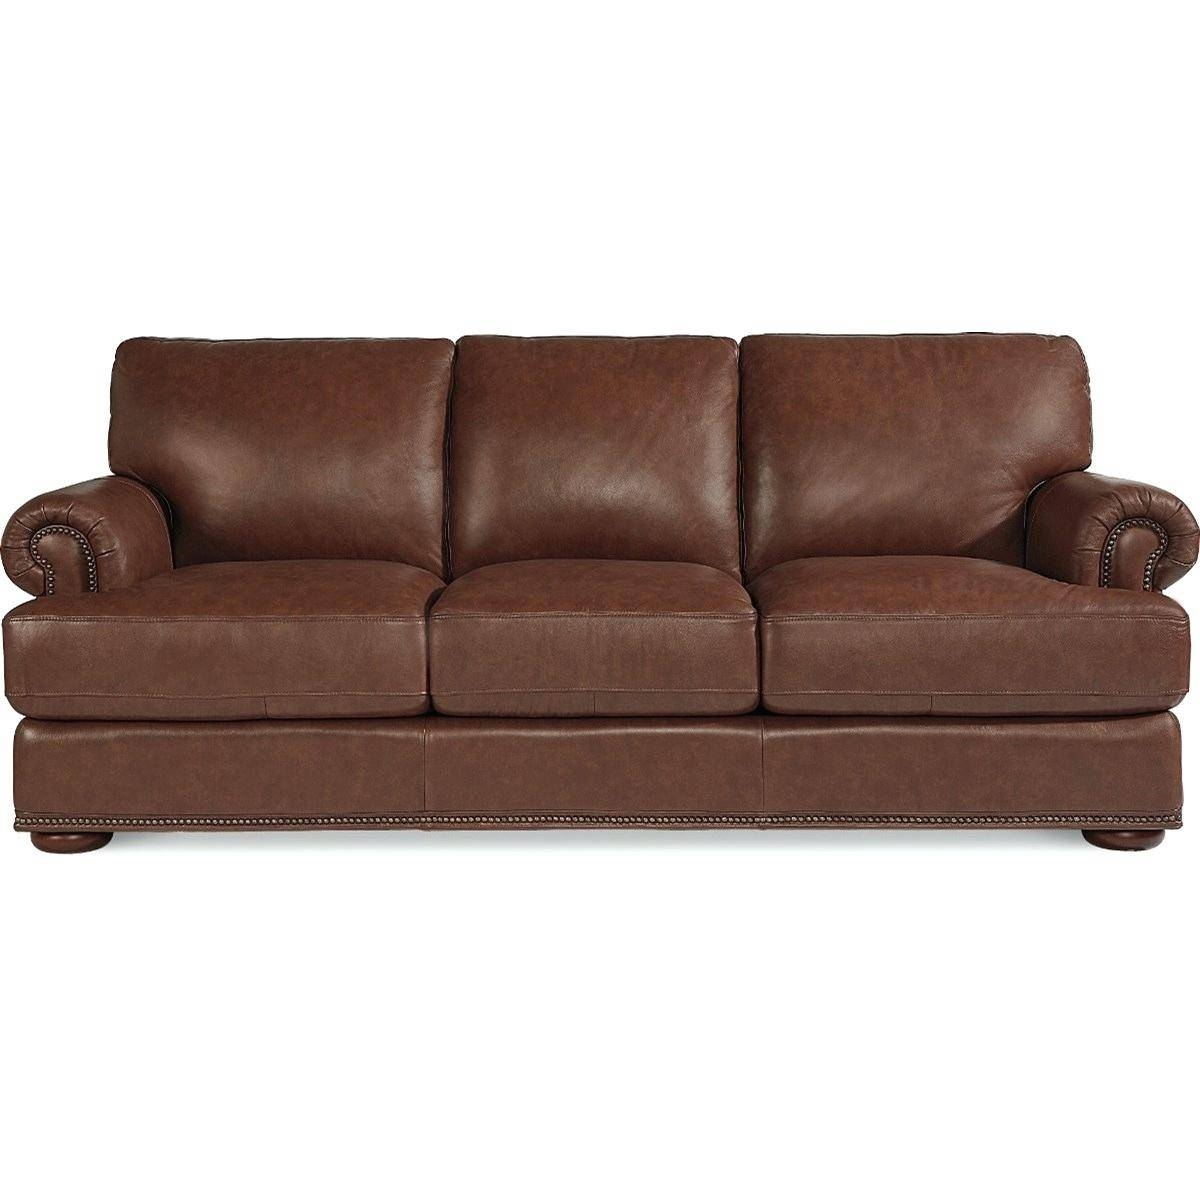 100+ [ Berkline Leather Sectional Sofas ] | Latest Leather Sofa in Berkline Sectional Sofas (Image 1 of 15)